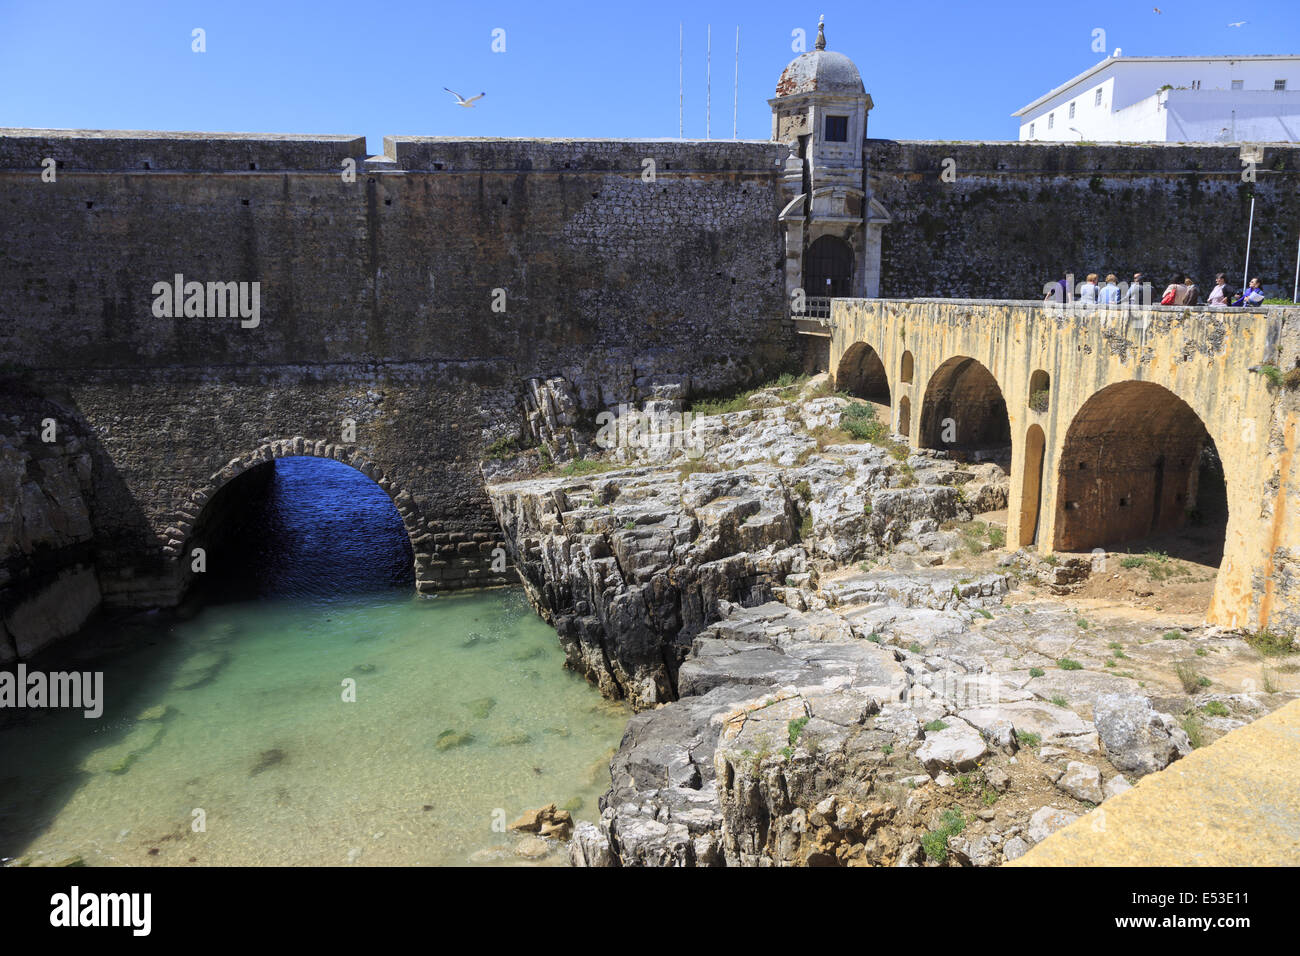 Seventeenth century Peniche Fortress Portugal. A military stronghold from middle ages used in the 19th and 20th - Stock Image